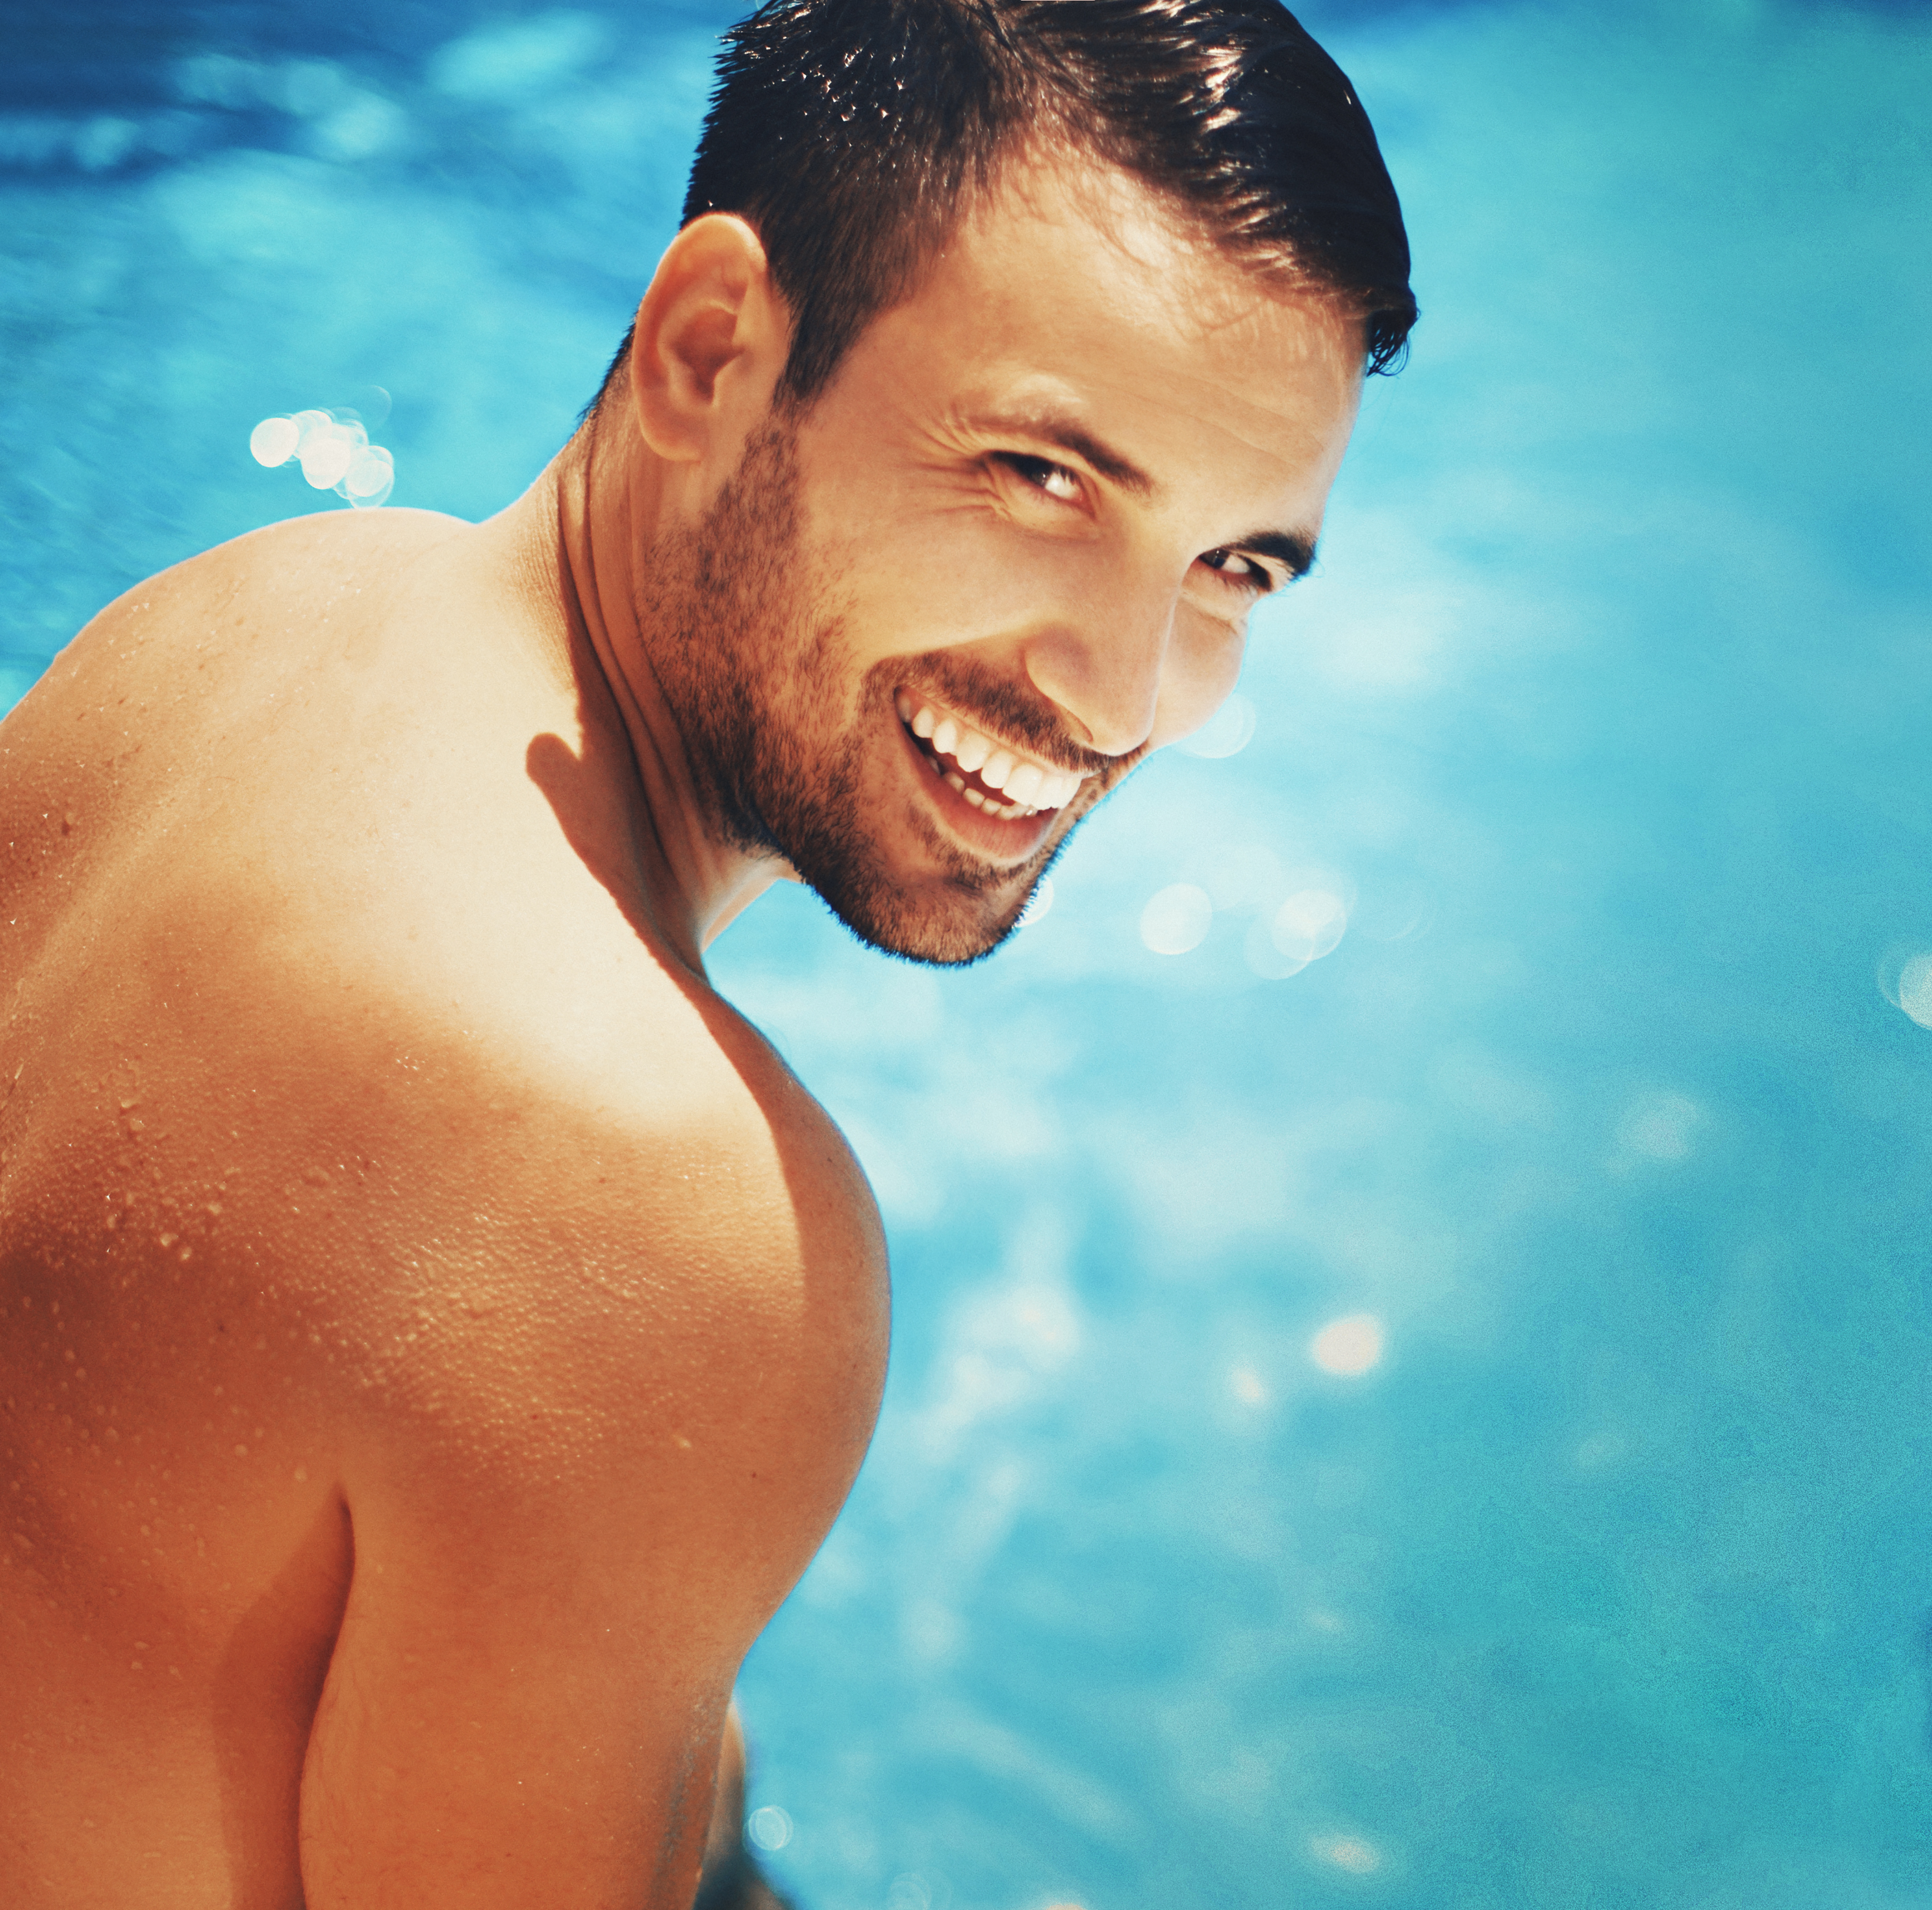 Handsome man relaxing by swimming pool.